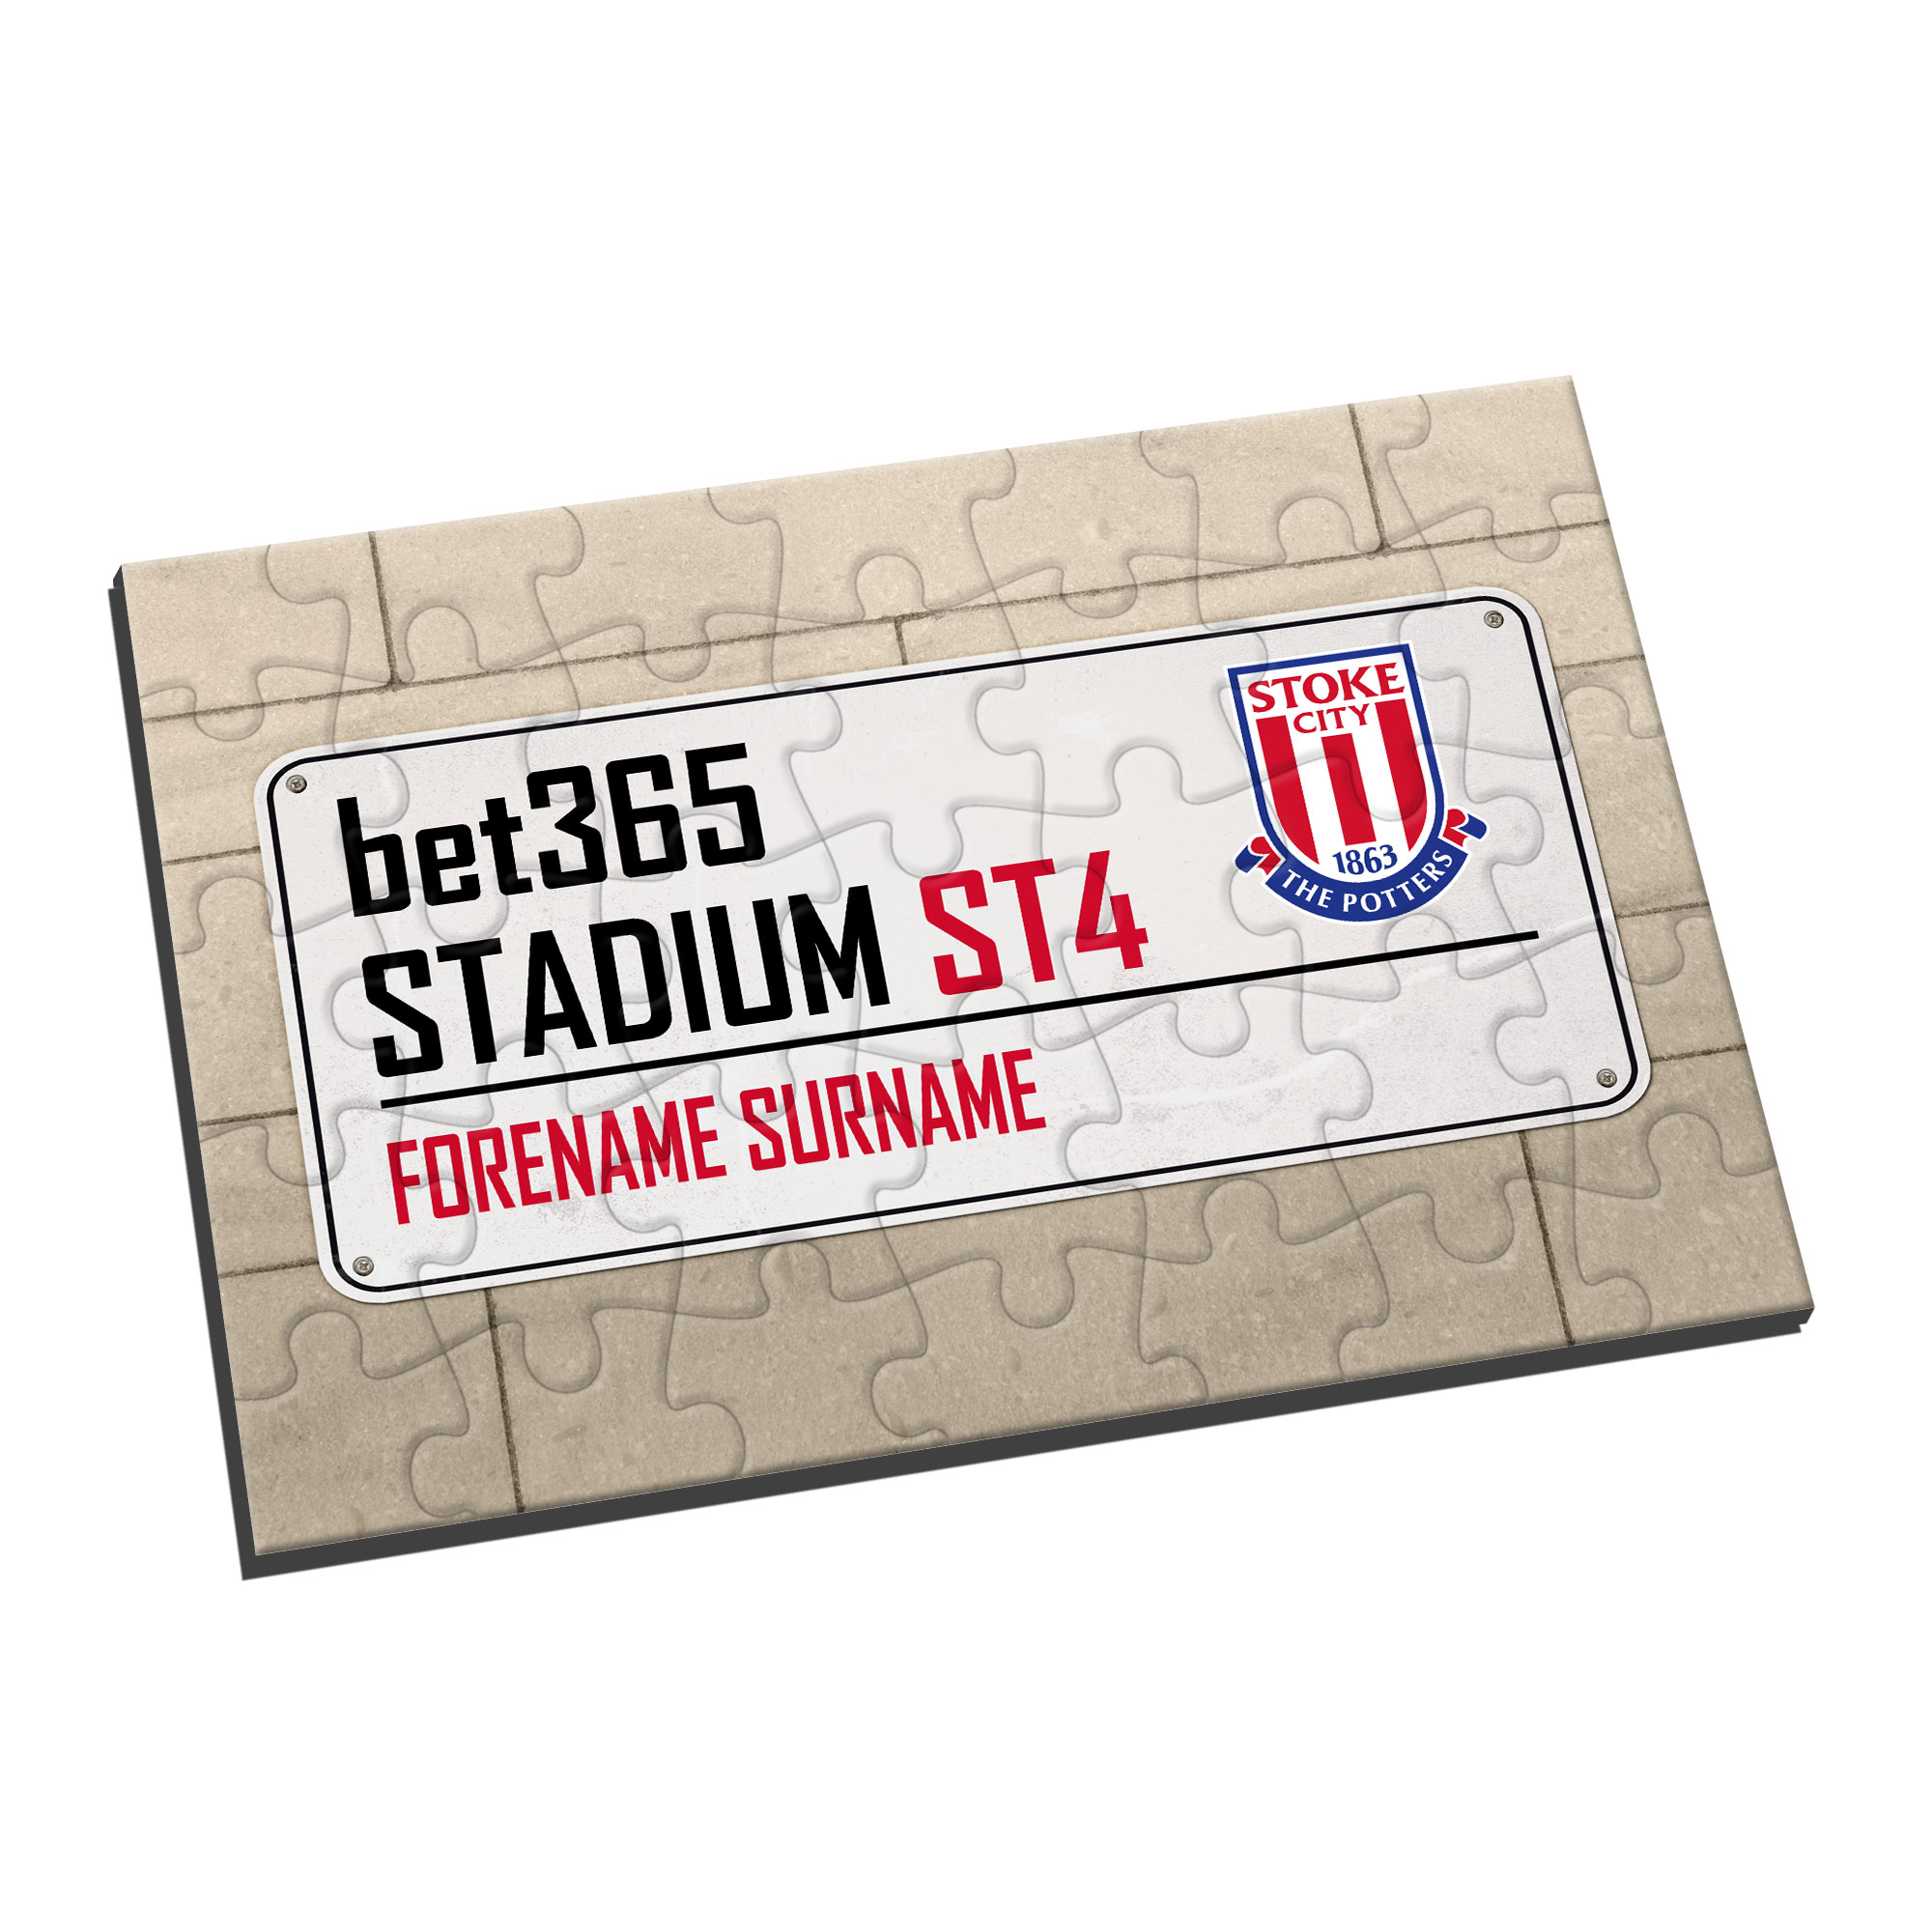 Stoke City FC Street Sign Jigsaw